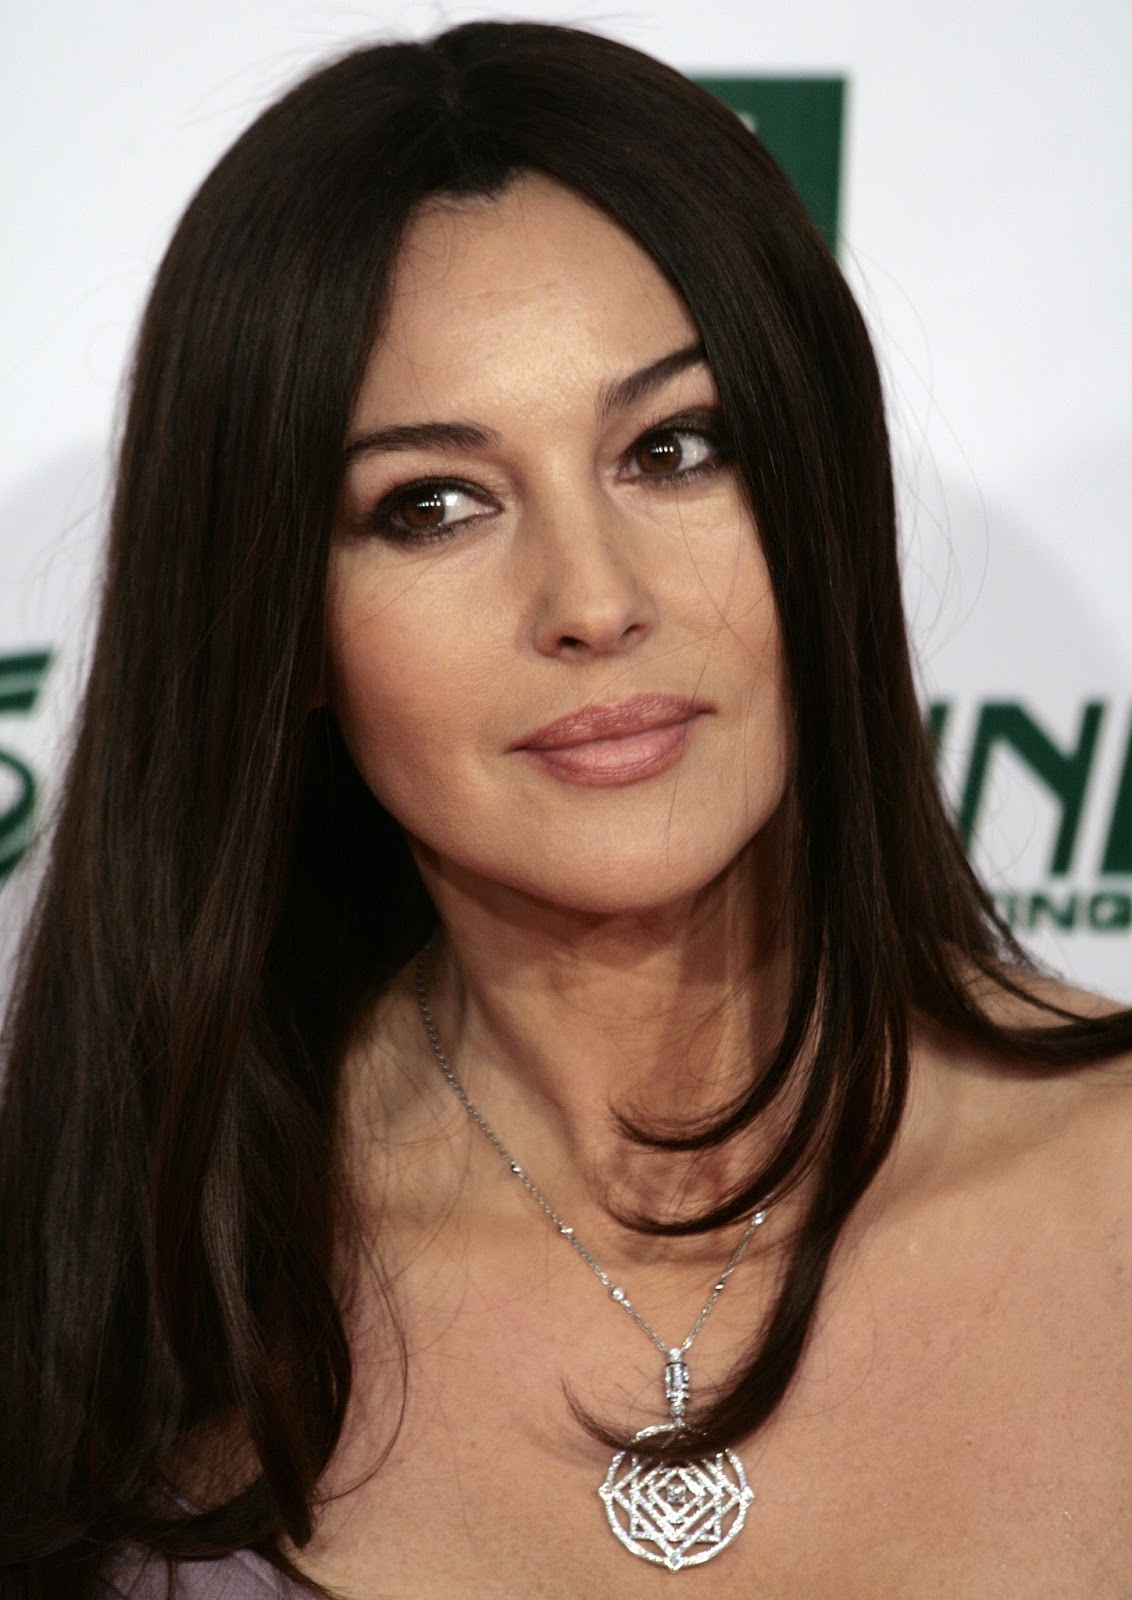 Italian Actress Monica Bellucci Biography And Lifestyle Archive